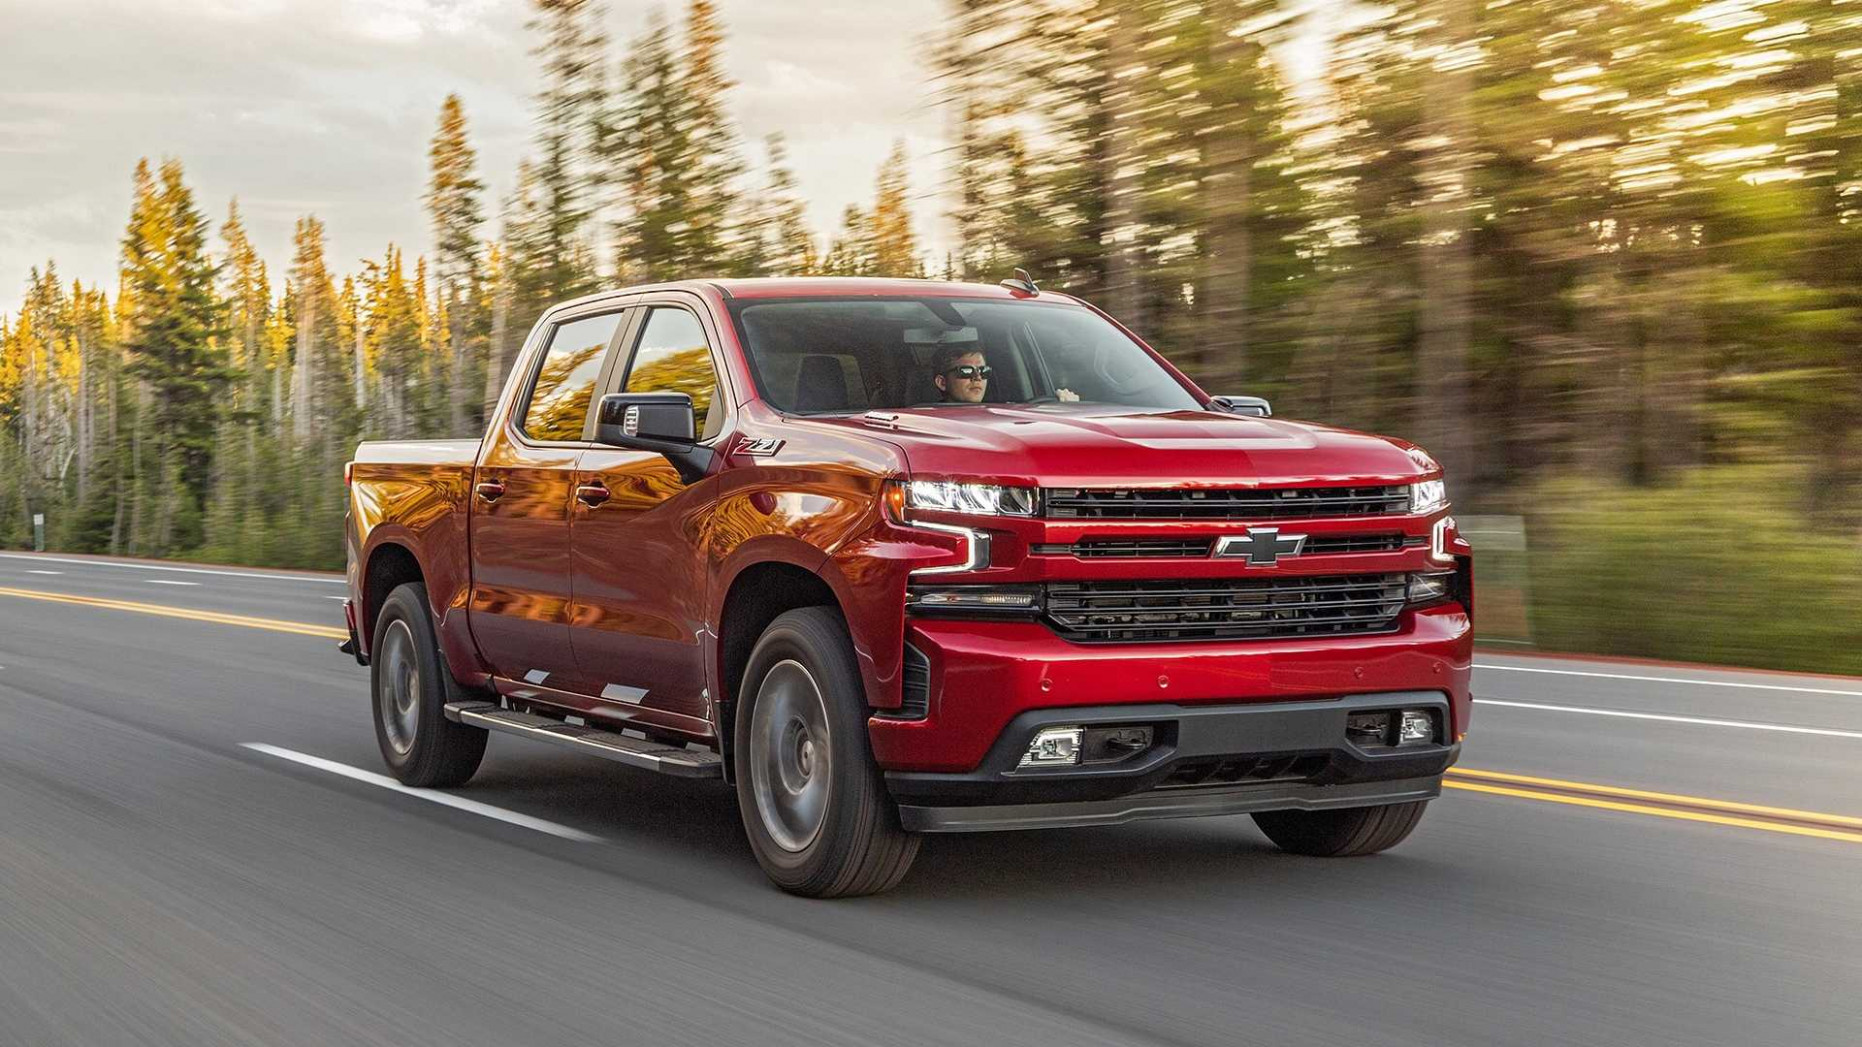 Redesign and Review 2022 Chevy Silverado Hd